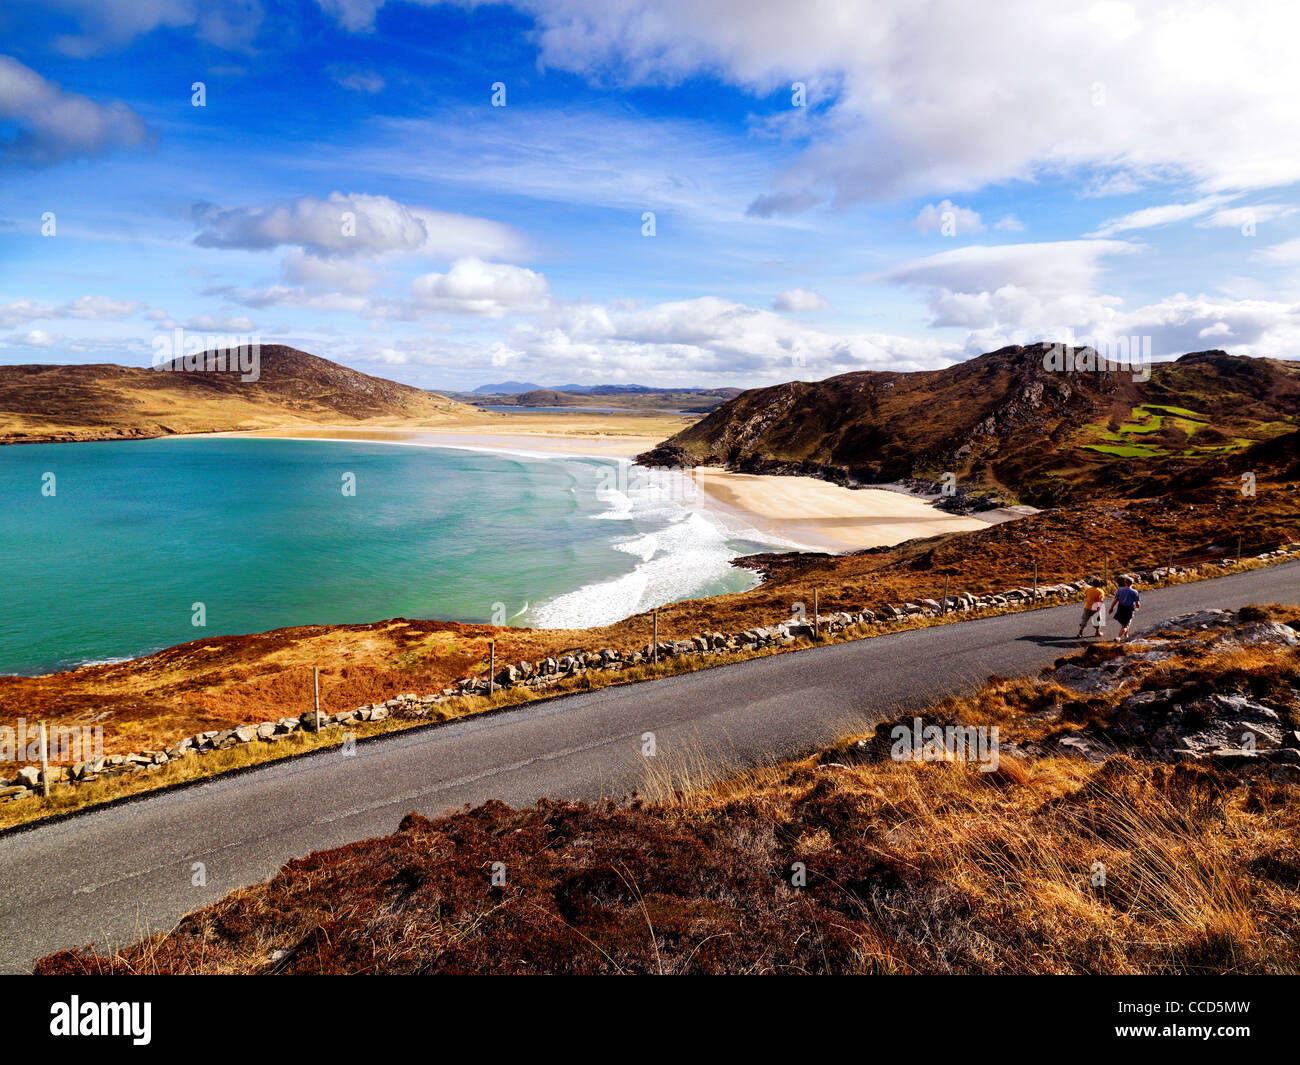 Tranarossan,Rosguill,Co.Donegal, Ireland. - Stock Image